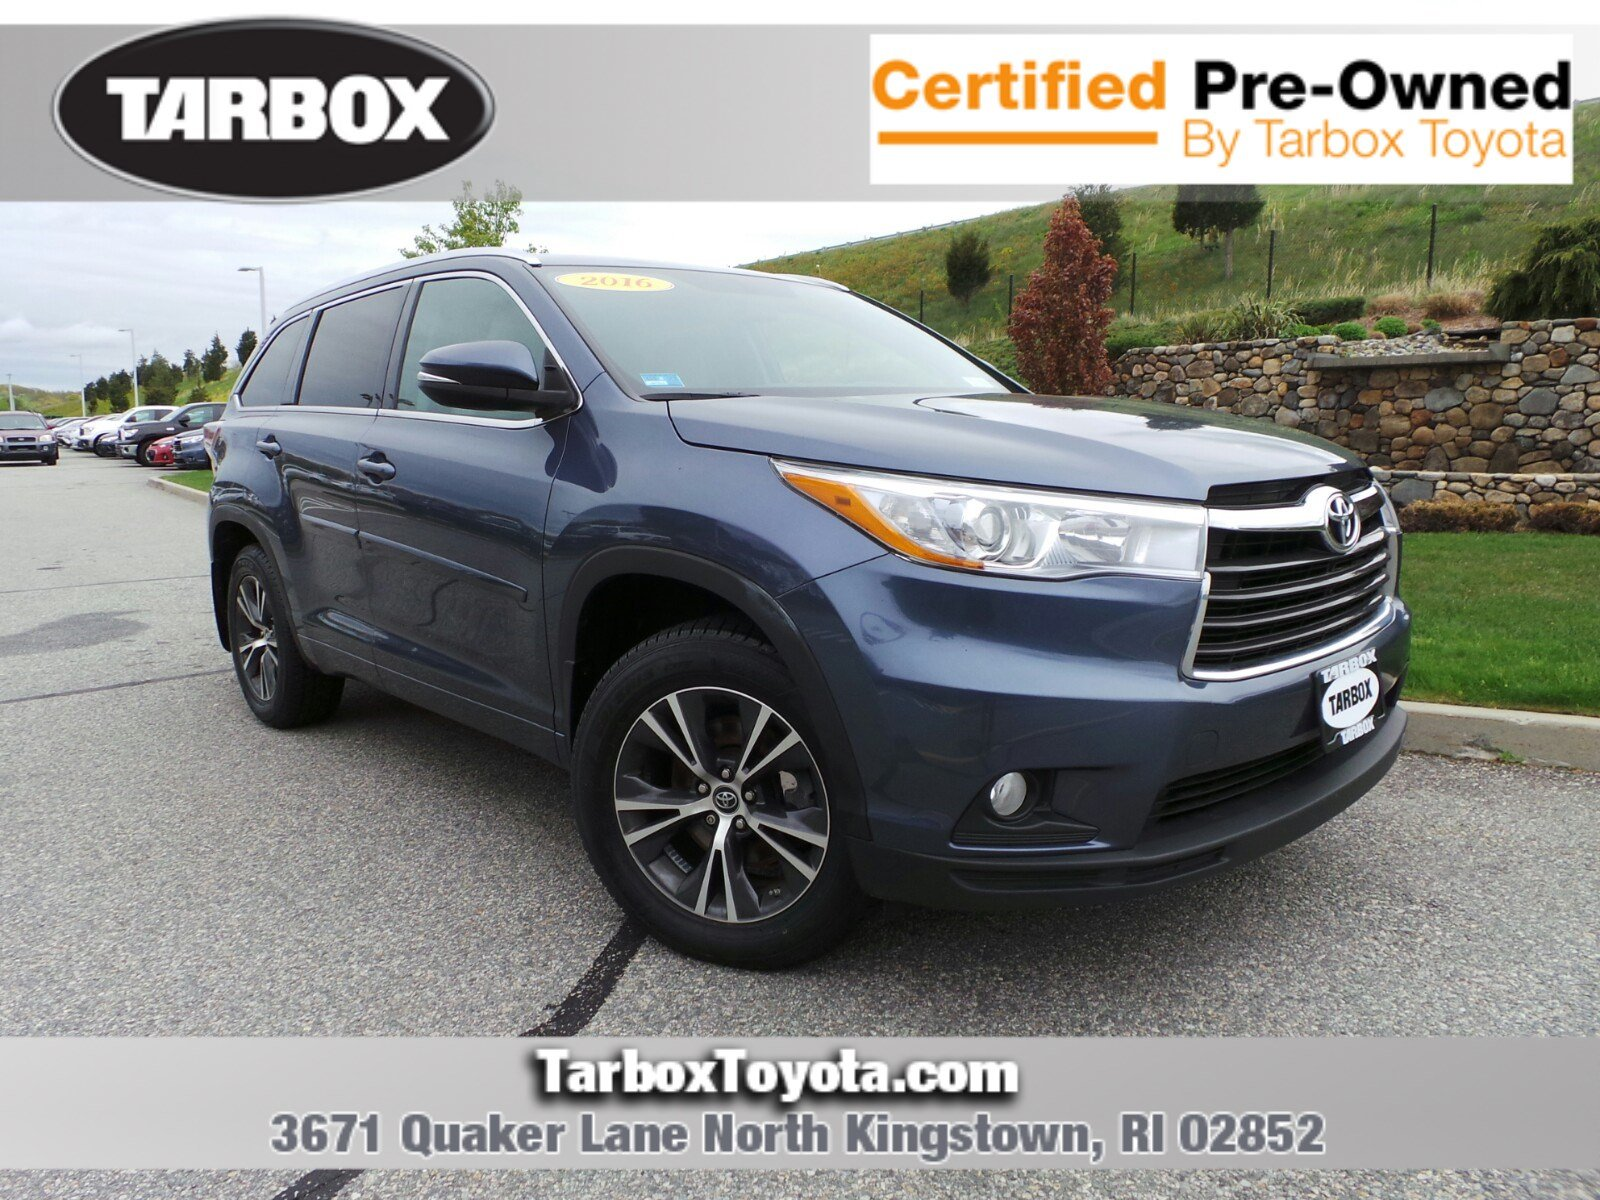 2016 Toyota Highlander For Sale >> Pre Owned 2016 Toyota Highlander For Sale In North Kingstown Ri Near